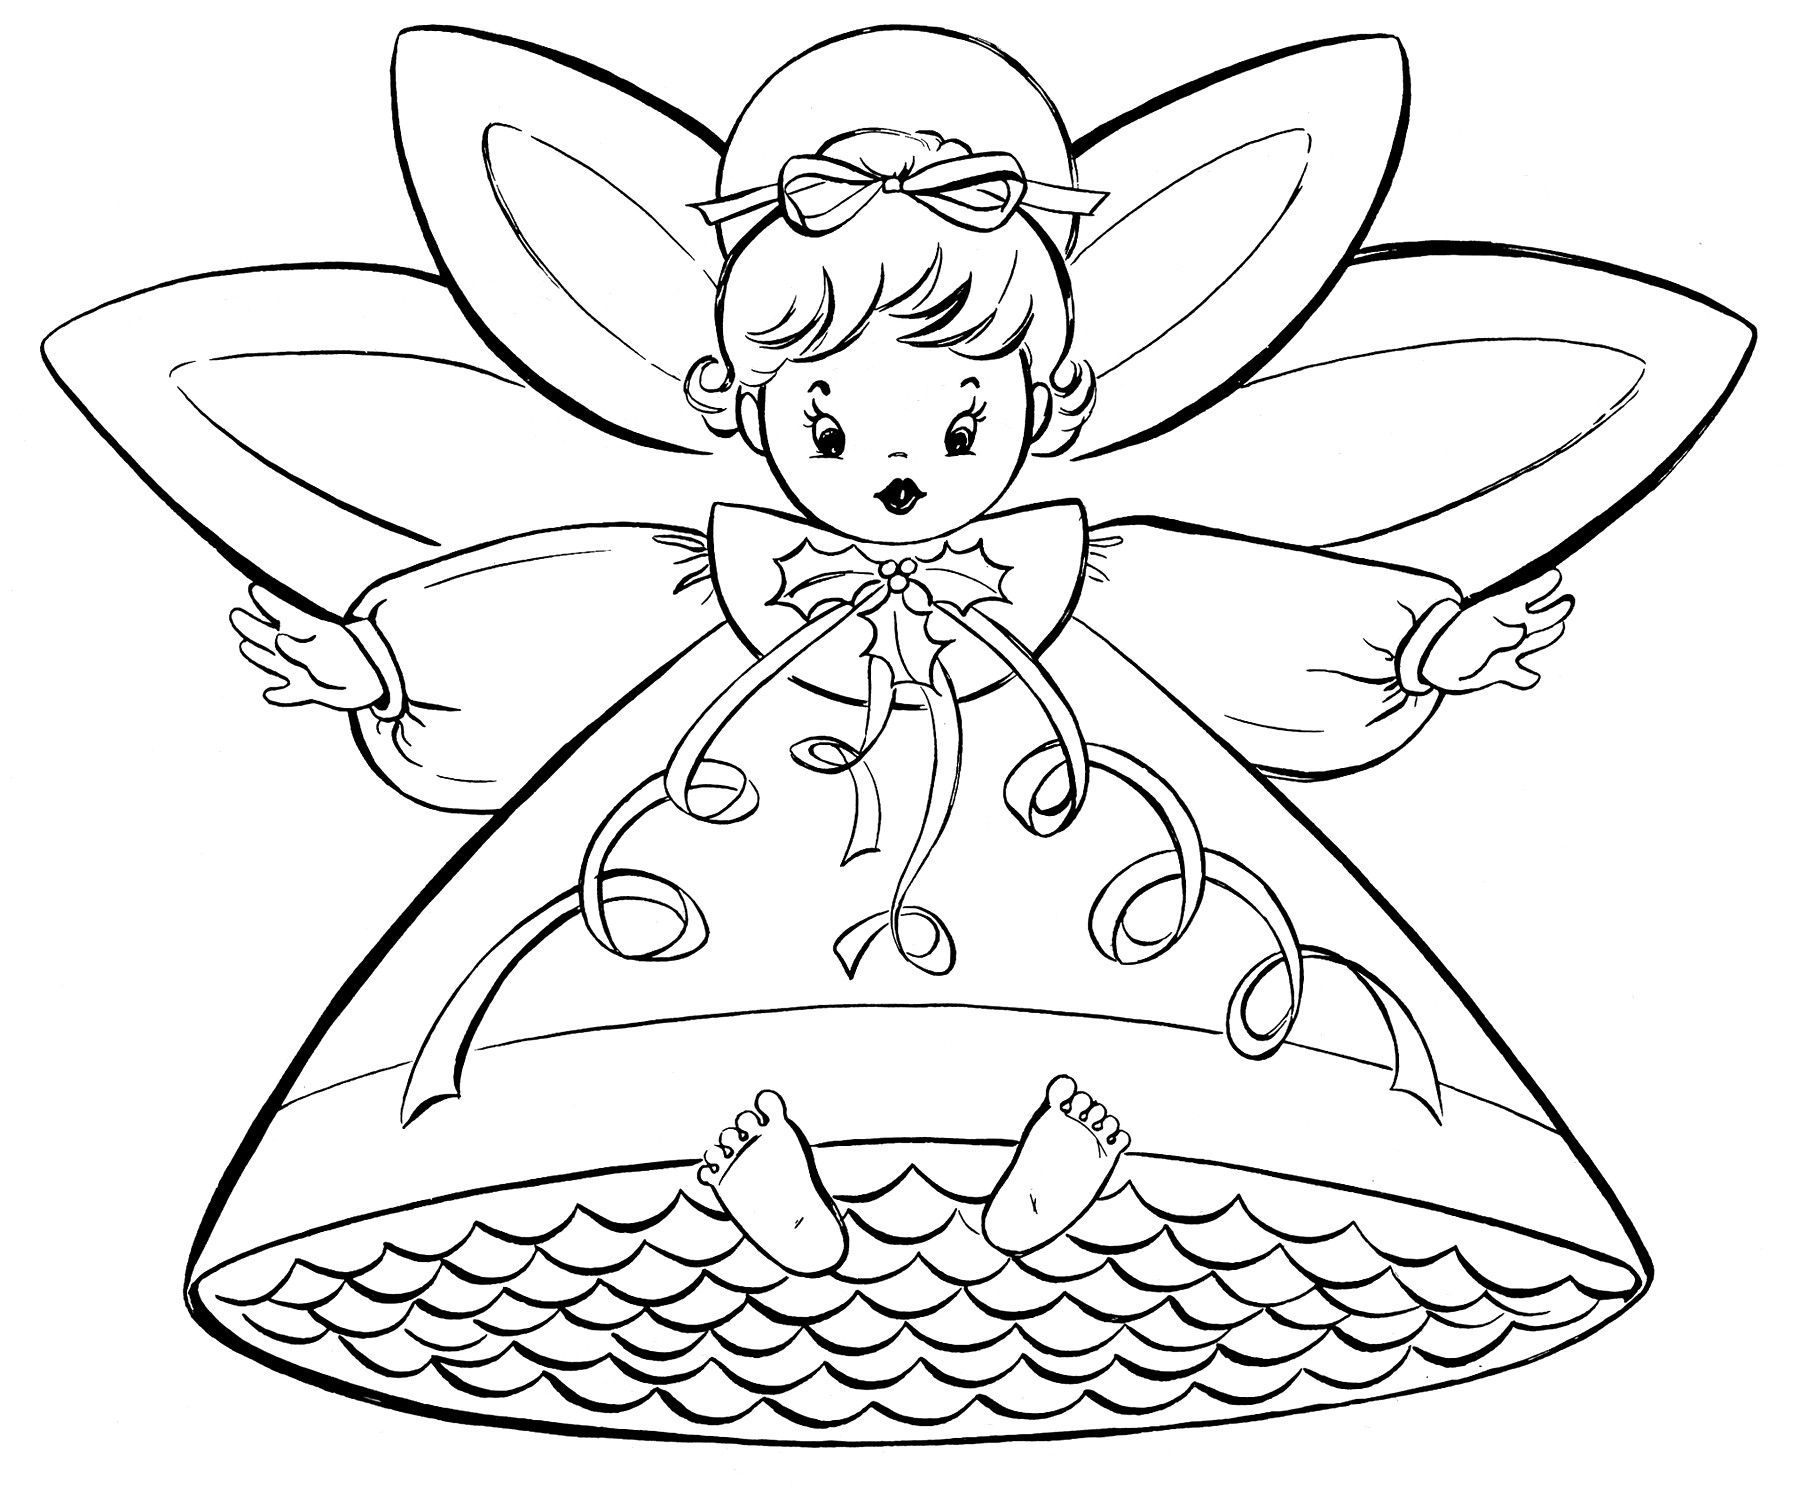 New Christmas Pictures To Colour And Print For Free Coloring Color Free Christmas Coloring Pages Printable Christmas Coloring Pages Christmas Coloring Sheets